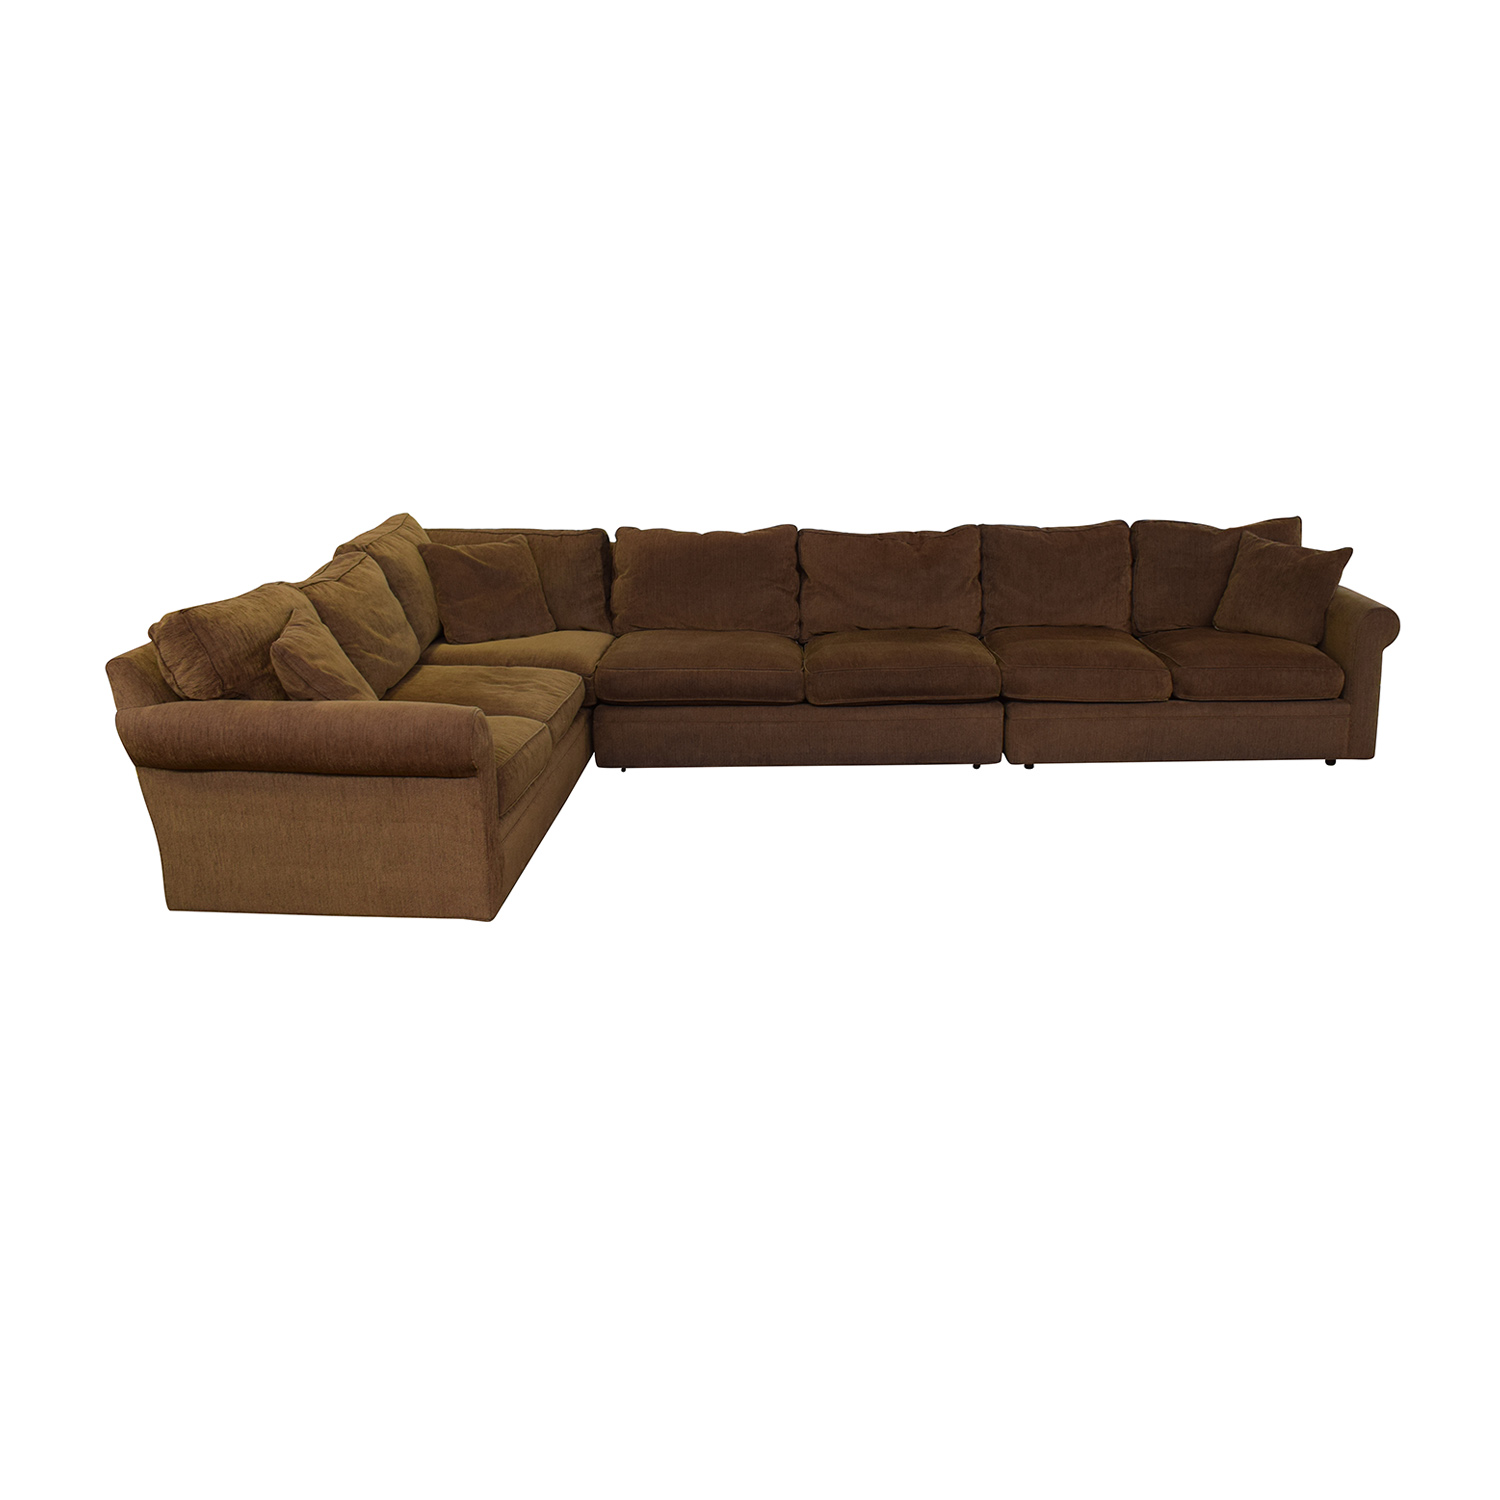 Crate & Barrel Modular Sectional Sofa / Sofas